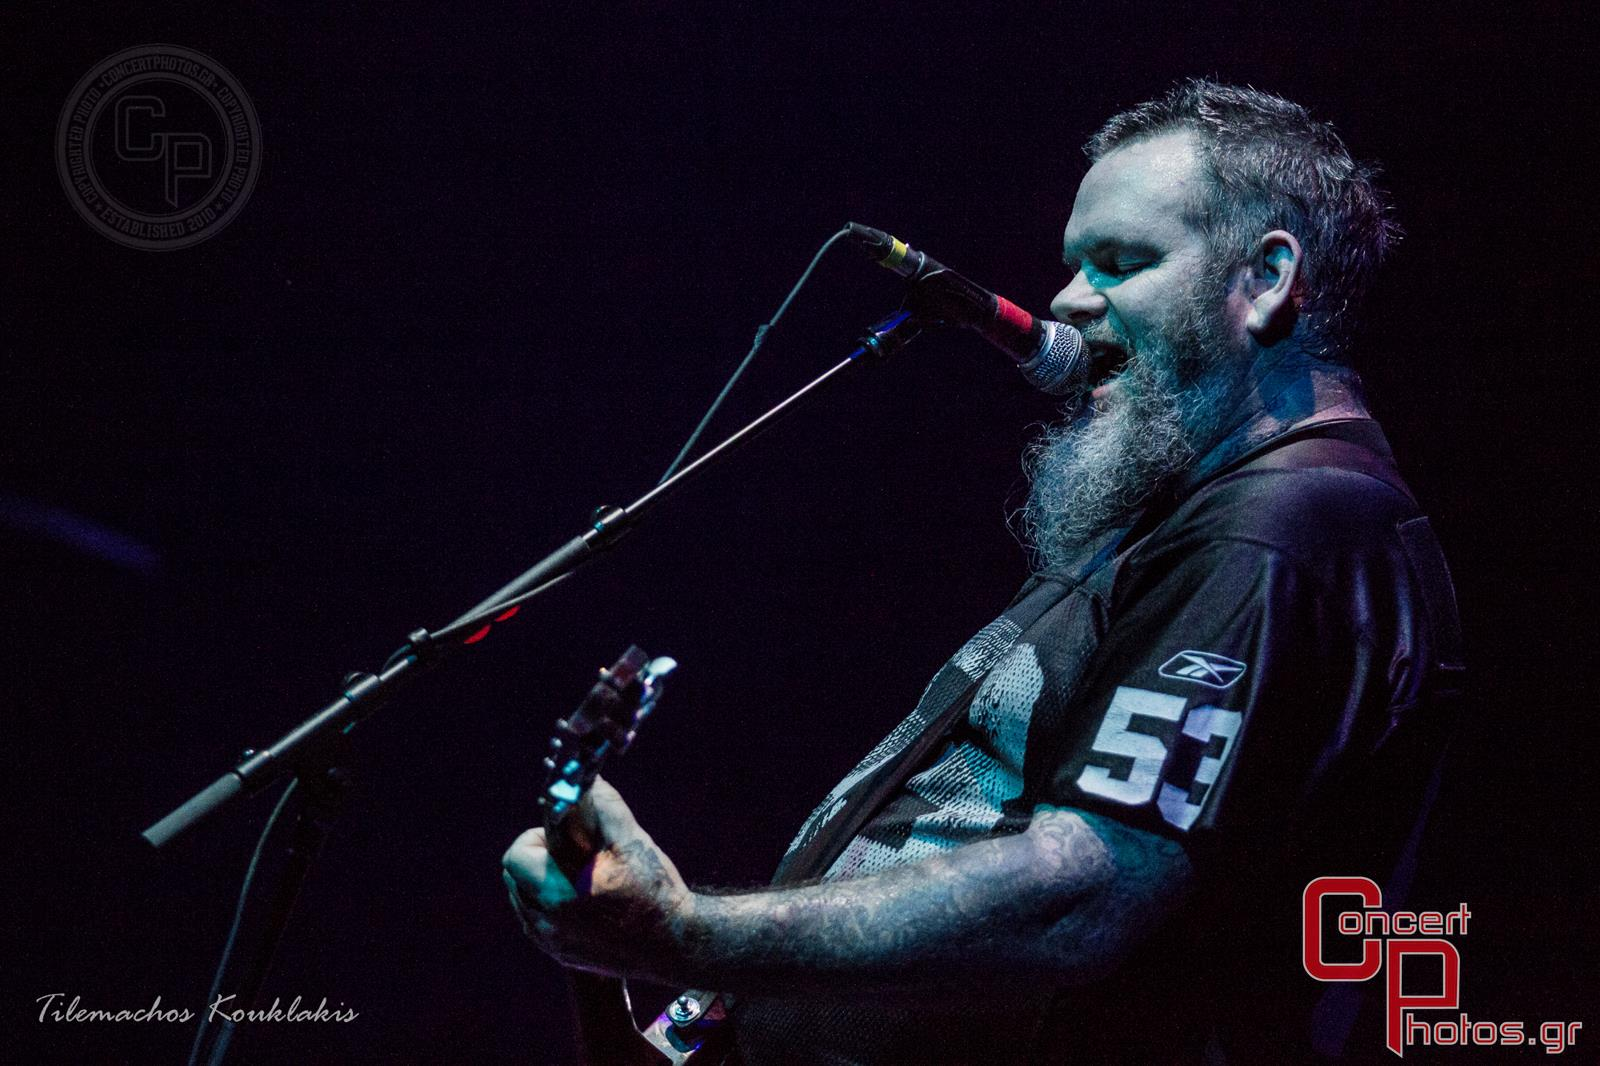 Neurosis-Neurosis photographer:  - concertphotos_20140707_23_56_35-2